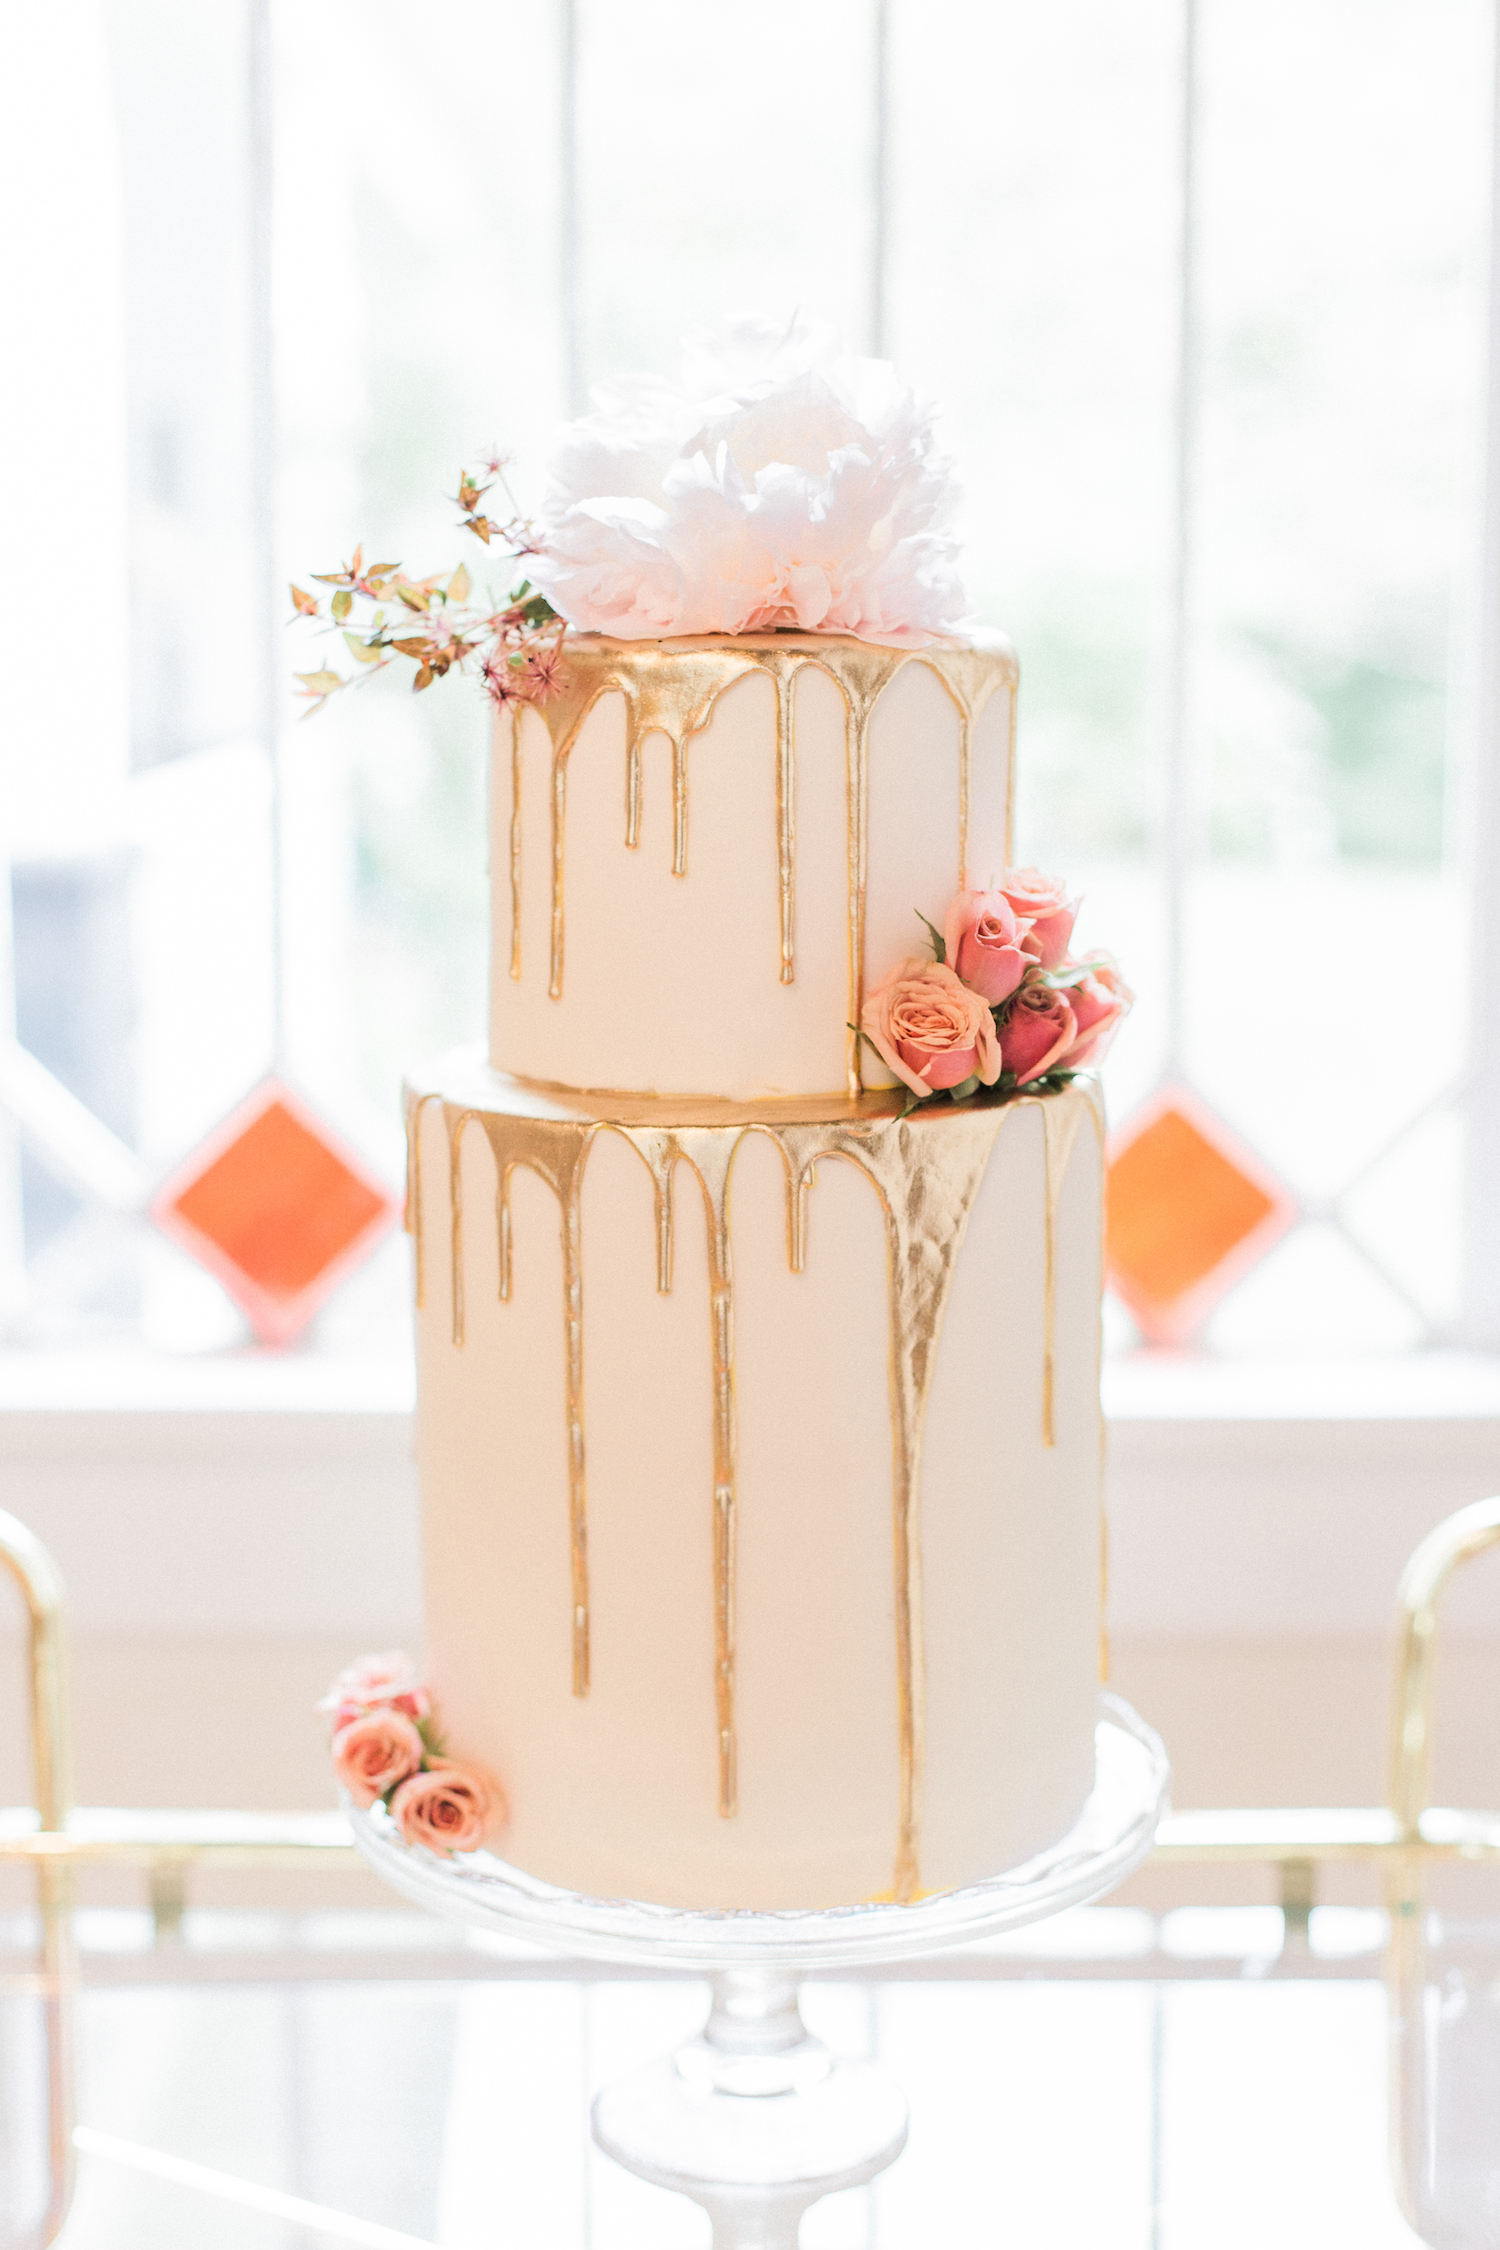 Gold dripped wedding cake with roses and peonies on a antique gold bar cart.